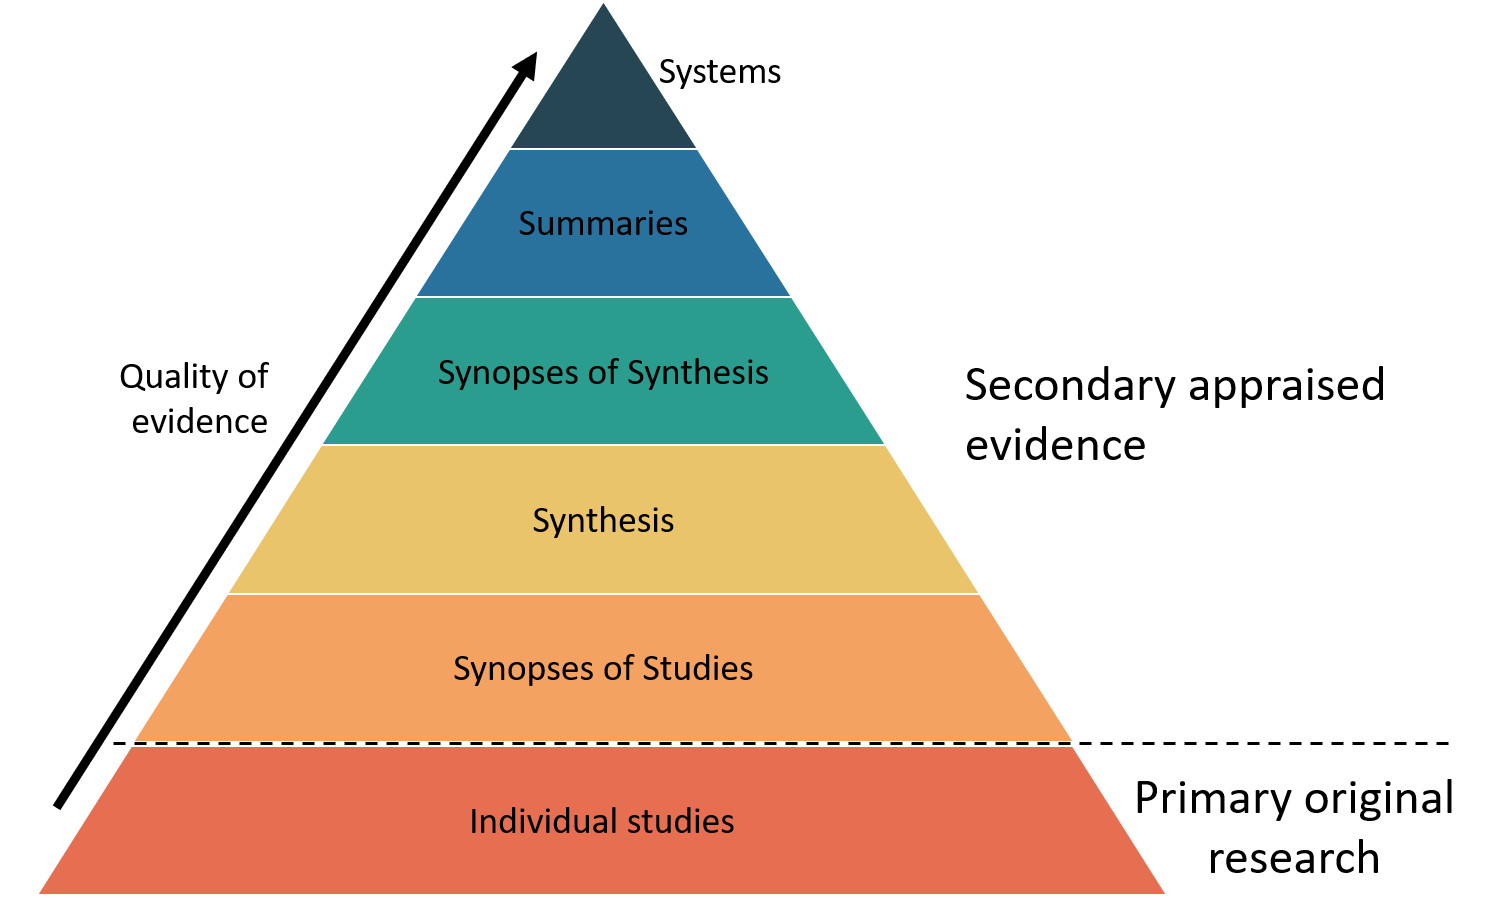 Image of pyramid with levels showing the hierarchy of evidence in EBP with higher levels of the pyramid representing higher quality sources. Levels from bottom to top are Primary original research (individual studies), Secondary appraised evidence (synopses of studies, synthesis, synopses of synthesis, summaries, systems).